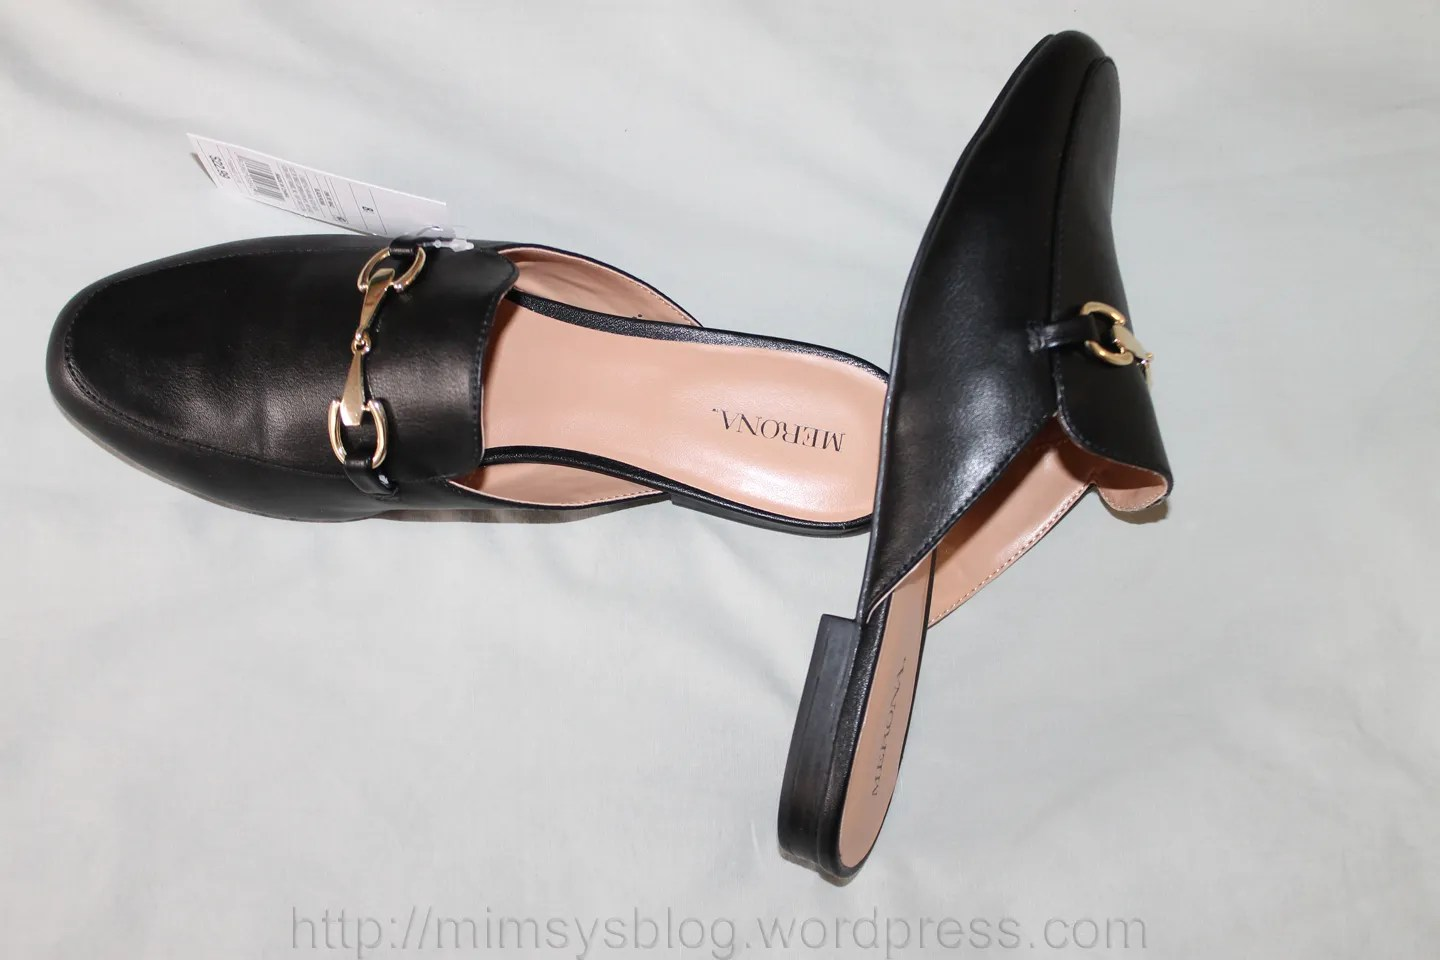 68cdd9c4260 Target President s Day Shoe Haul. Gucci Princetown Slipper Dupe ...